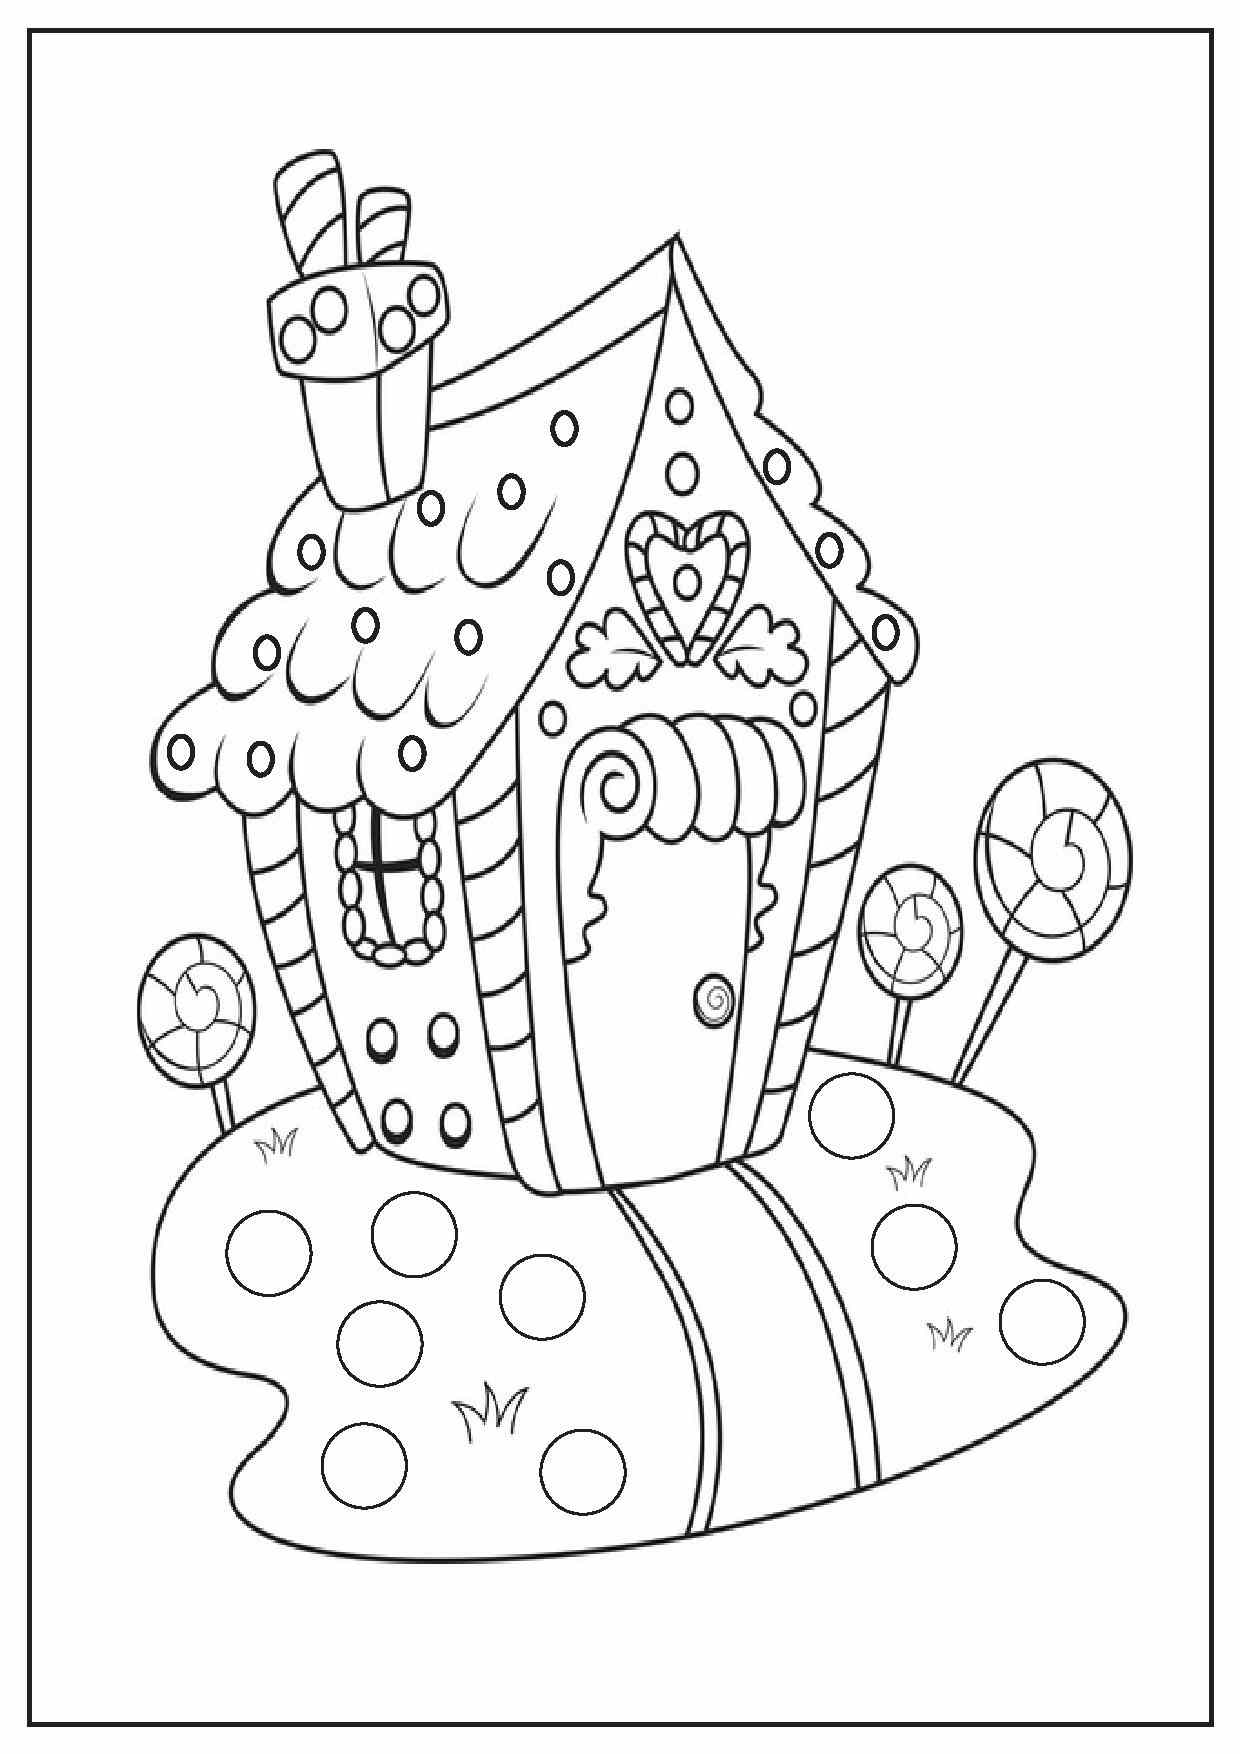 Merry Christmas Teacher Coloring Pages With Free Books